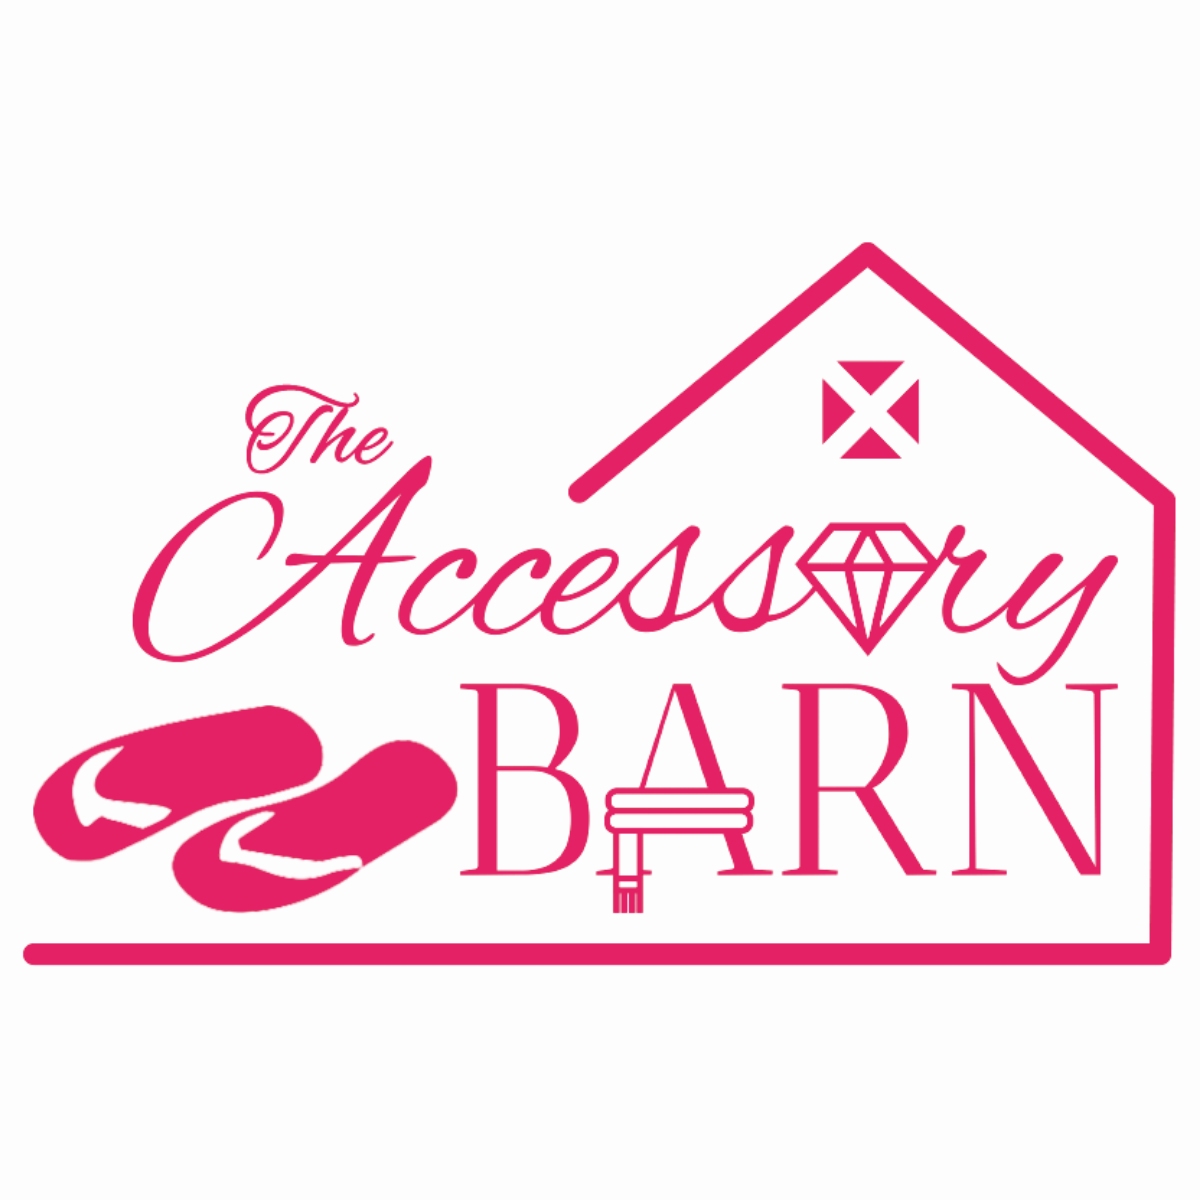 The Accessory Barn - Grandco Sandals for Women. We sell Beaded Sandals, jeweled Sandals, White Sandals, black sandals and more